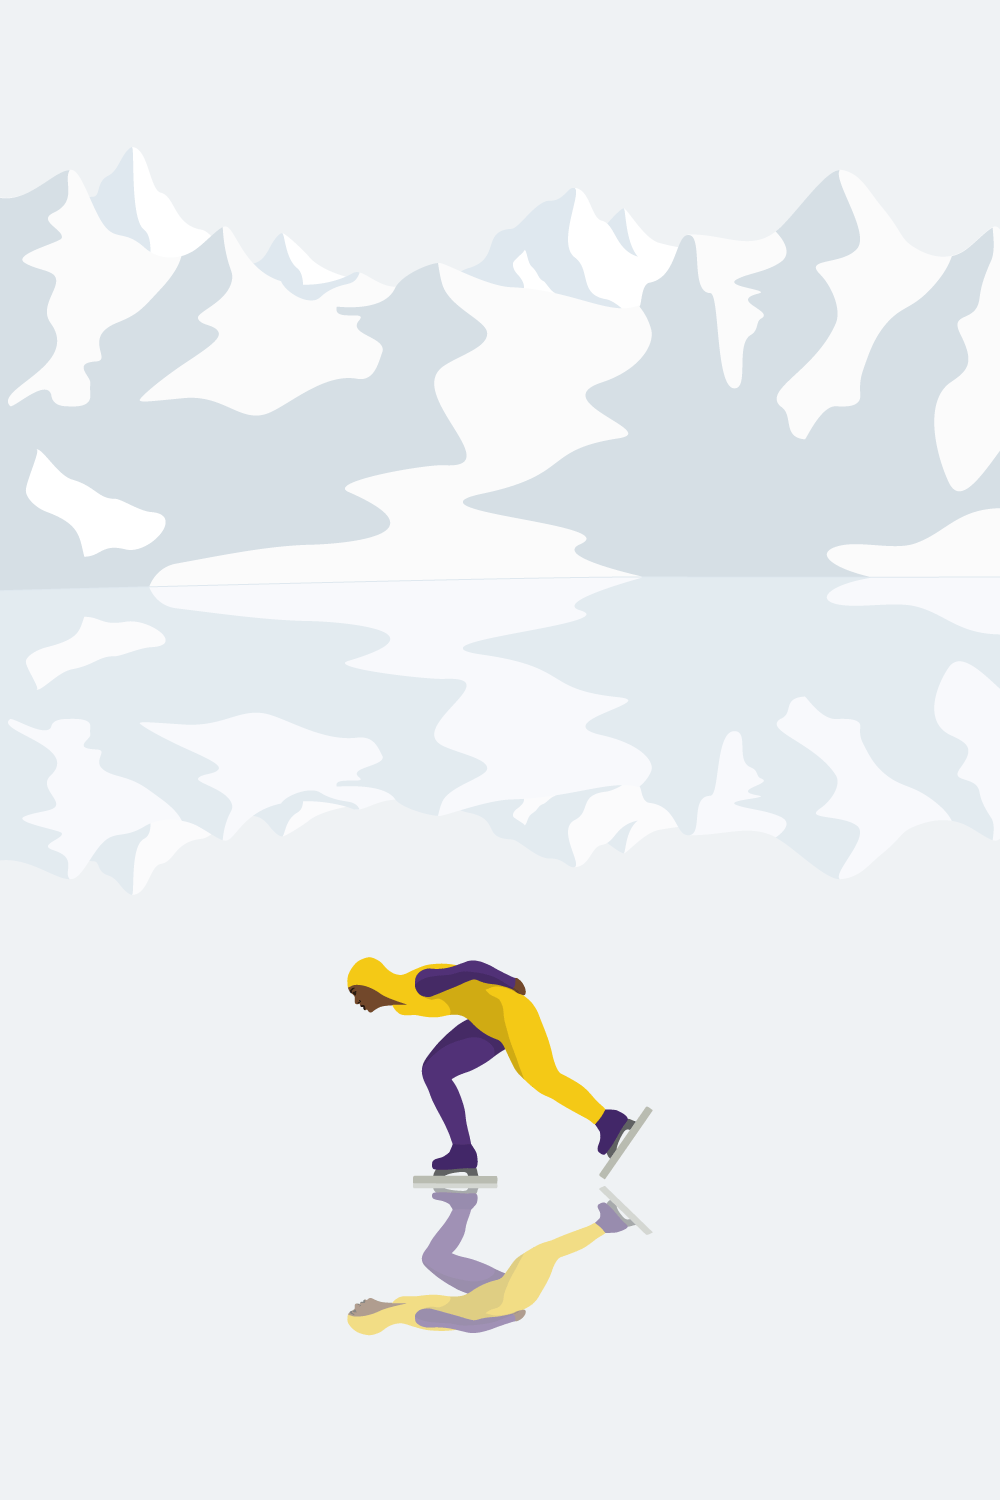 Lone Skater - illustration by Robert Fiszer